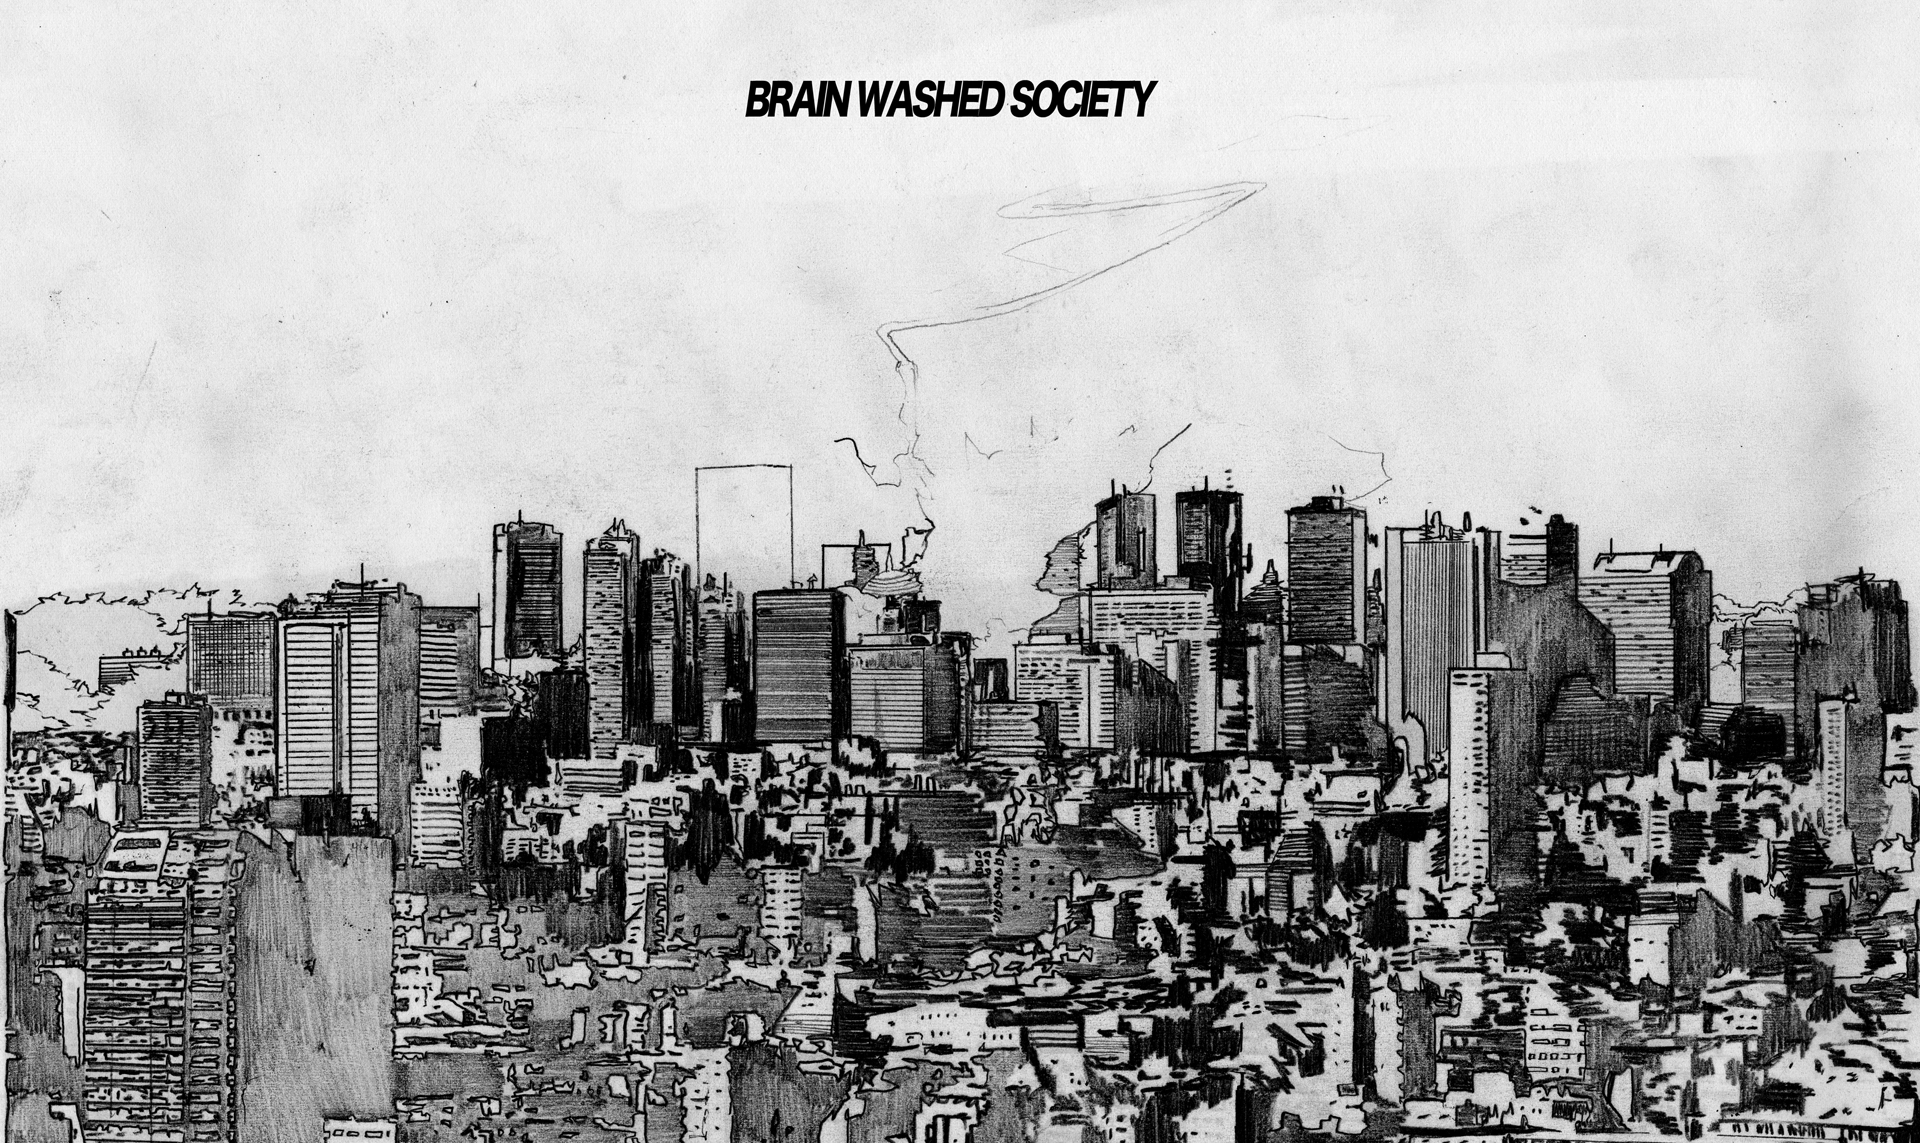 BRAIN WASHED SOCIETY